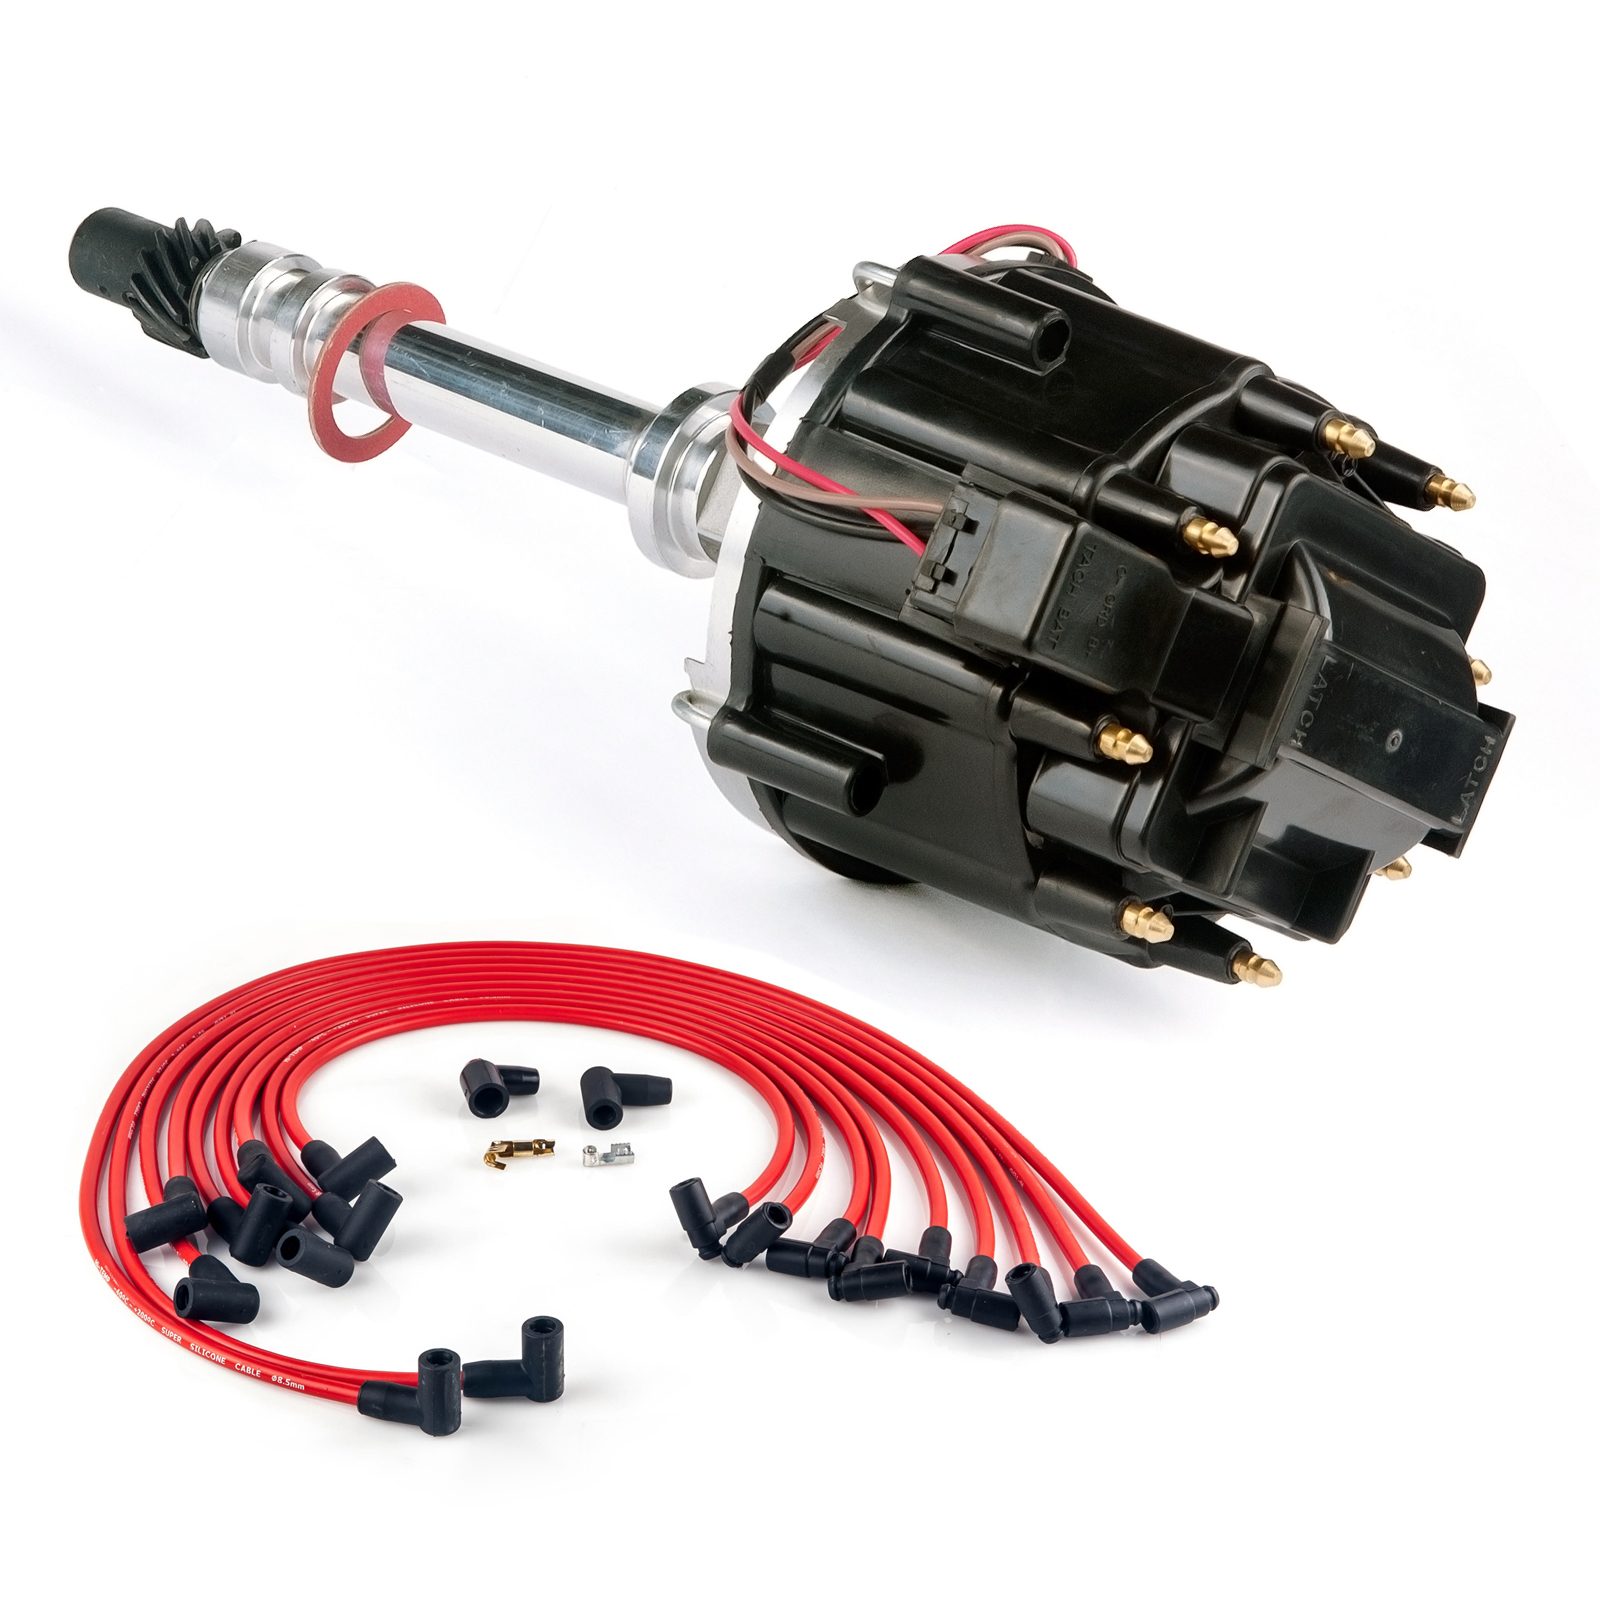 Chevy Sbc 283 305 327 350 400 Hei Spark Plug Wires Kit Black Wiring Distributor With